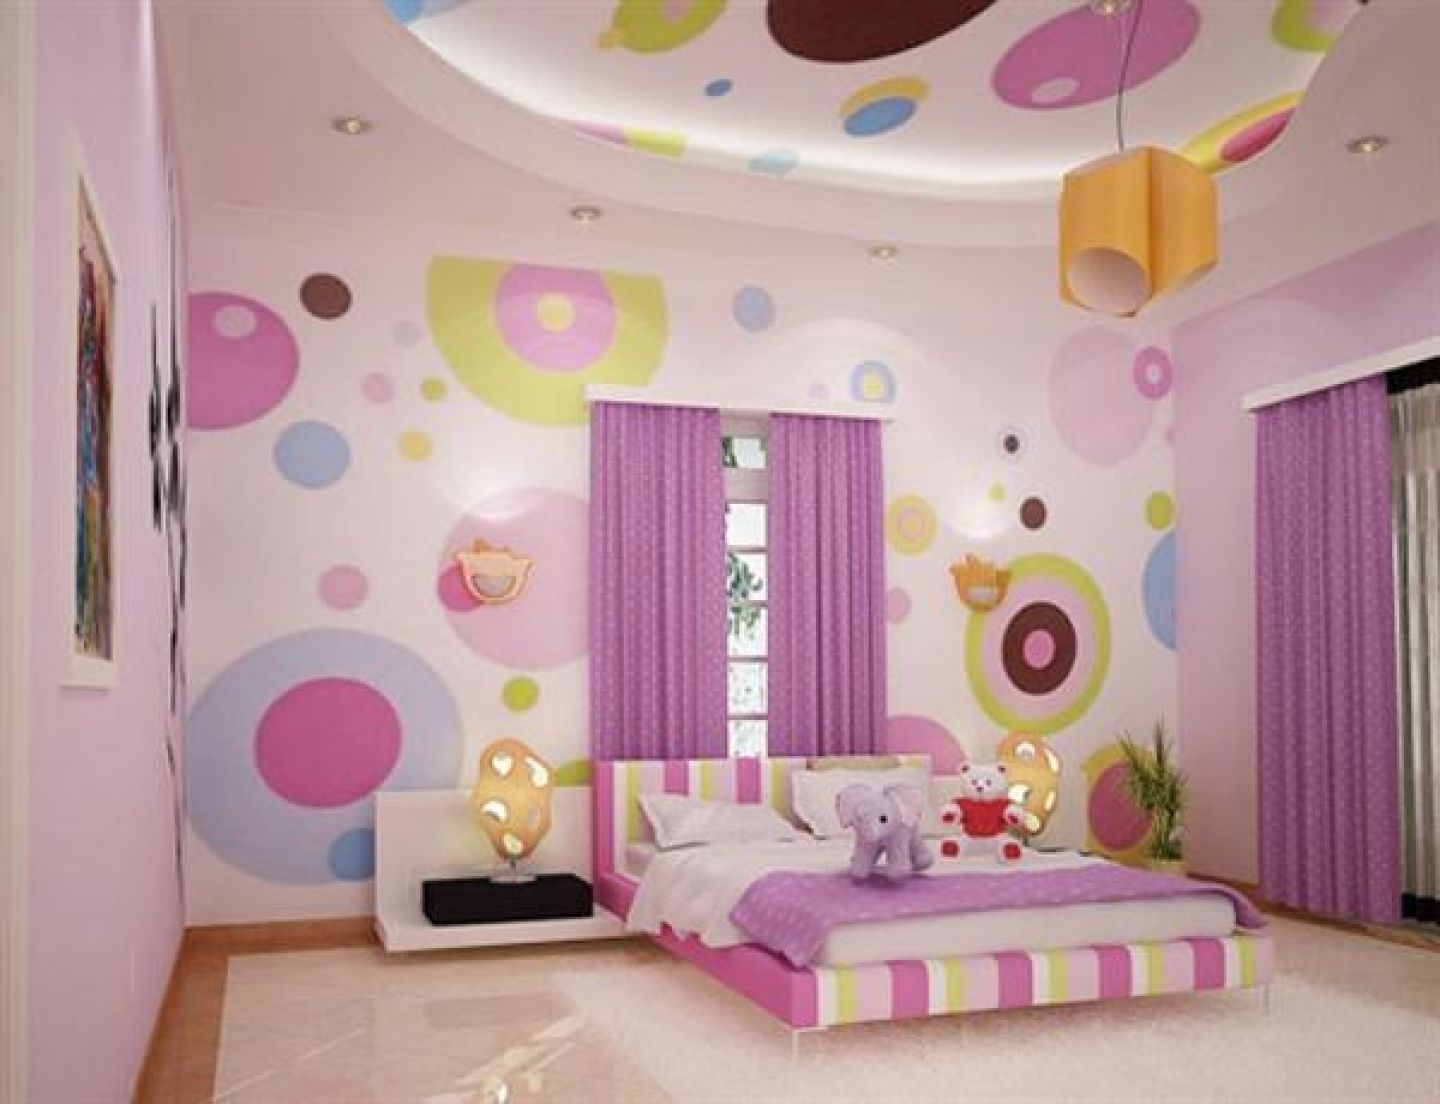 Girls Bedroom Paint Ideas Polka Dots amusing 30+ toddler girls bedroom paint ideas inspiration of best